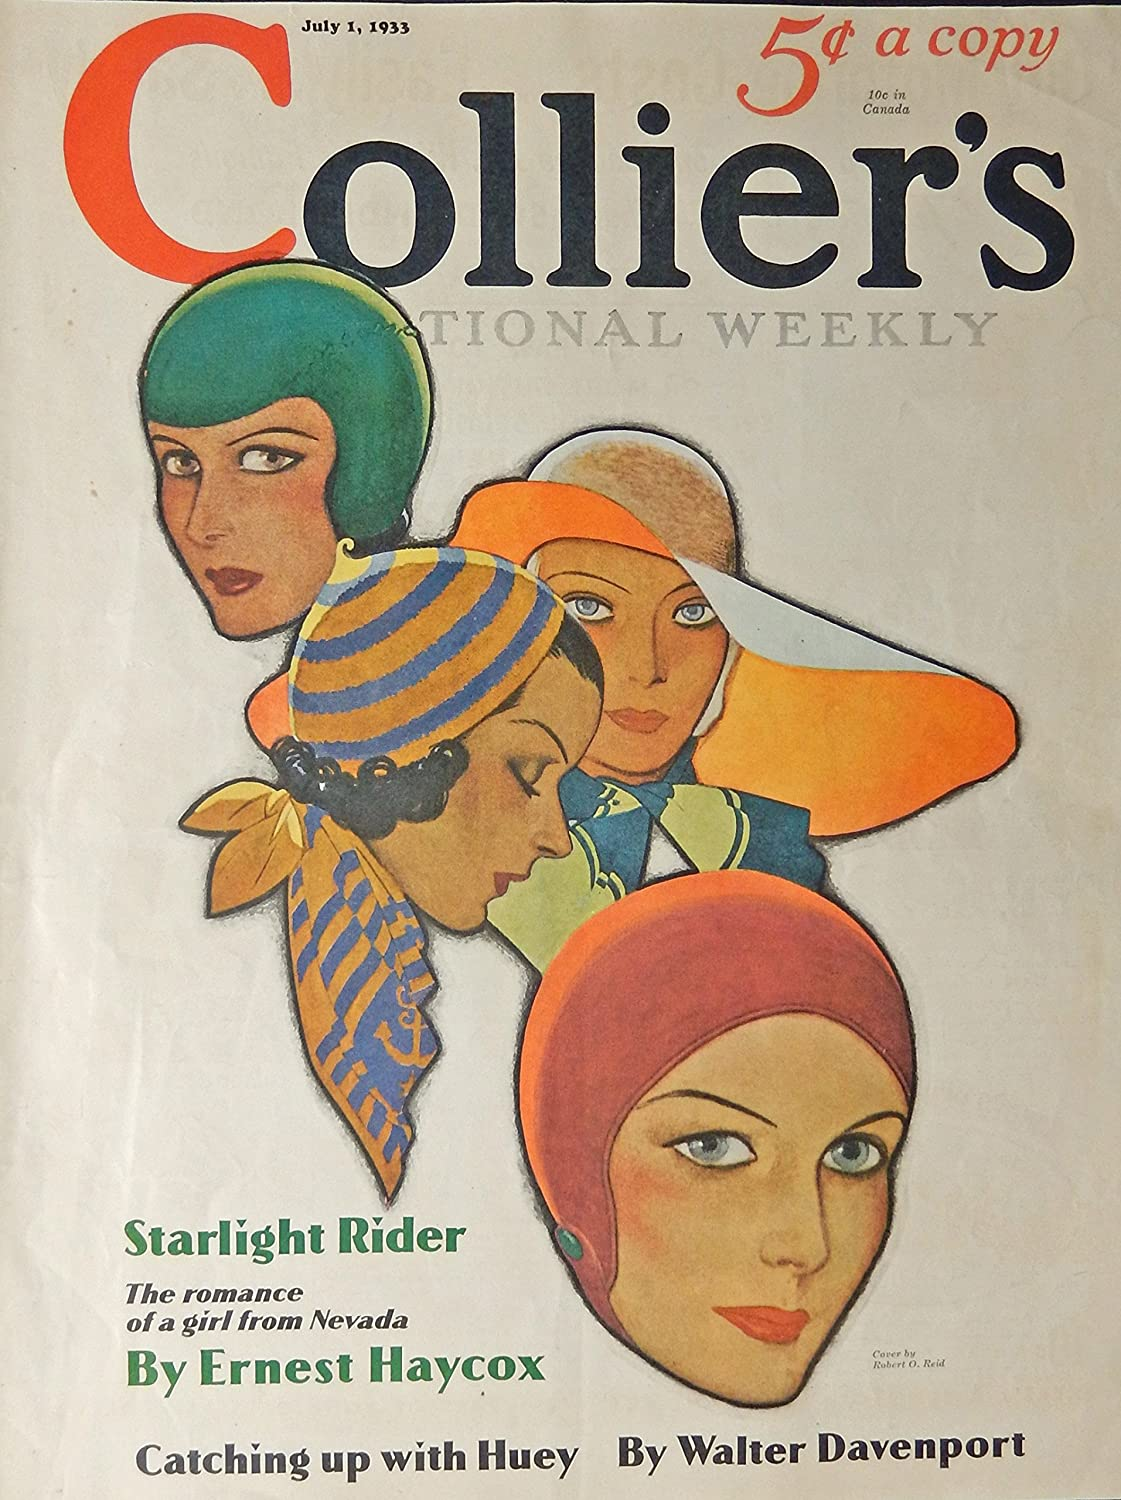 1933 Collier's Magazine, Color Illustration by Robert O. Reid. July 1933 cover art only